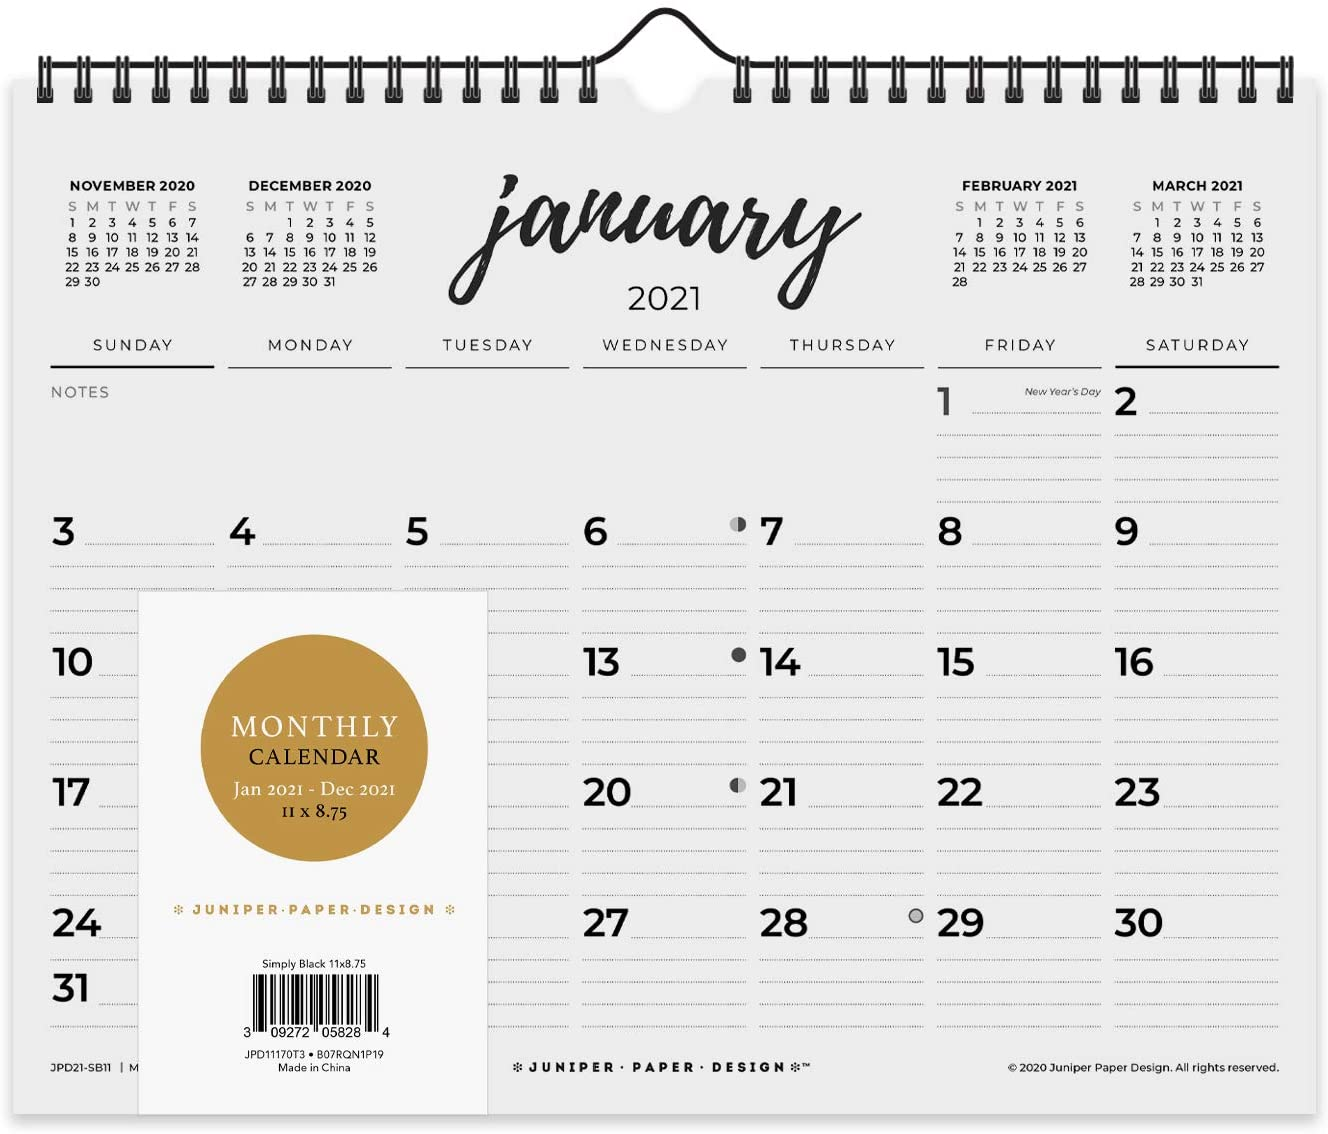 2021 Monthly Wall Calendar Desk Black & White Calendar January 2021 to December 2021, 11 x 8.75 Inches with Back Support to Keep It Flat - Simply Black